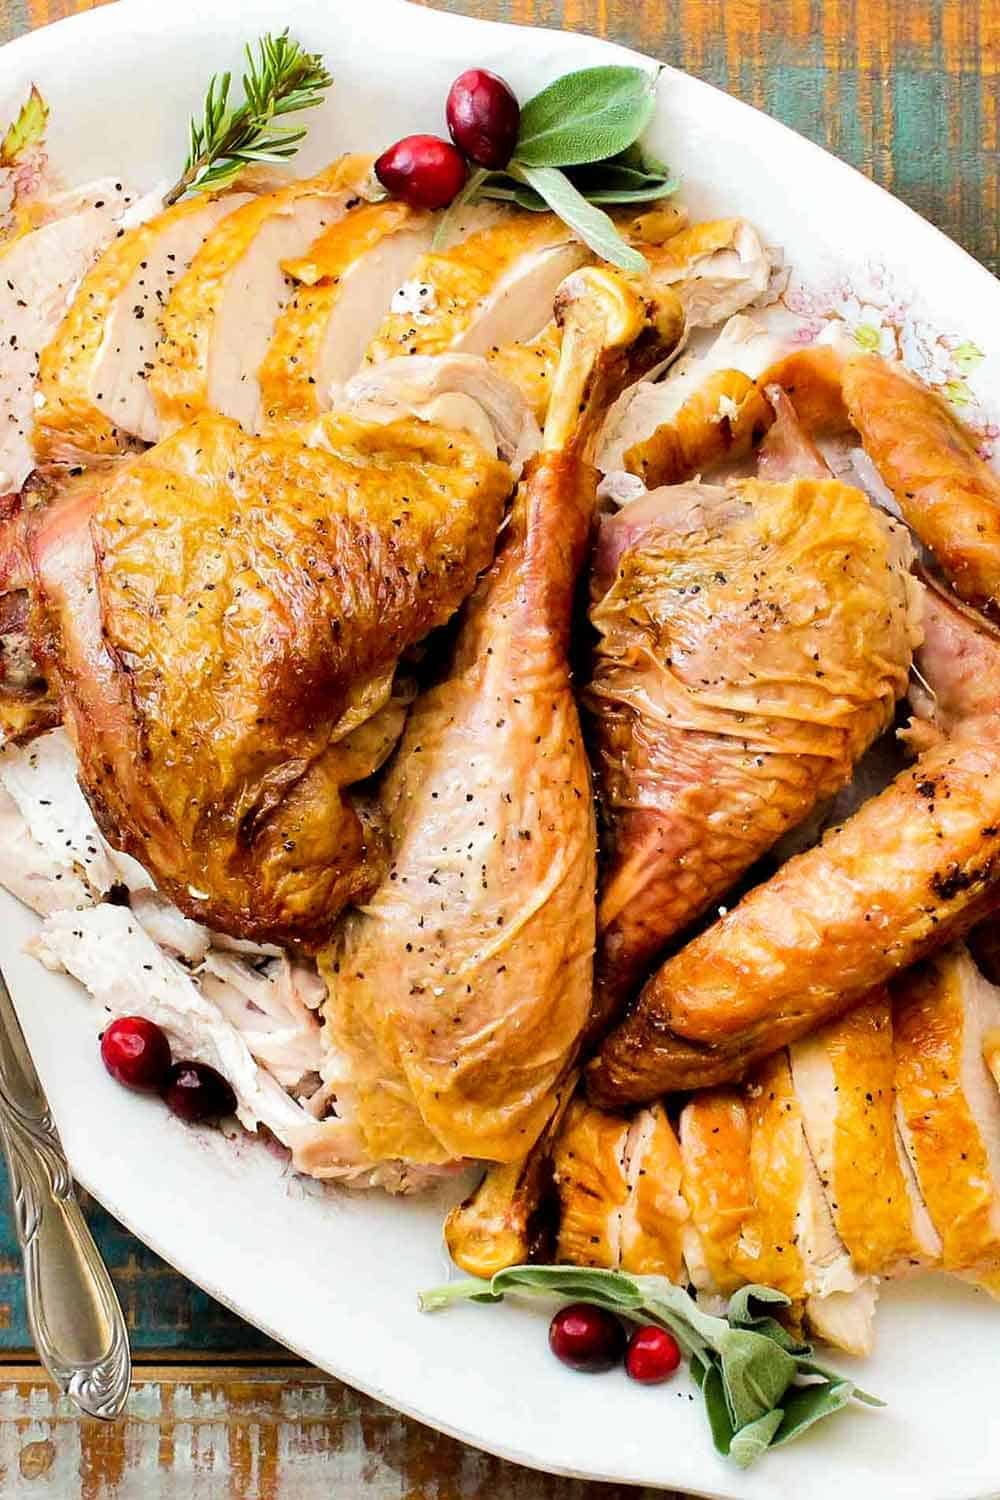 A large white platter of cooked and carved spatchcocked turkey with cranberries next to it.